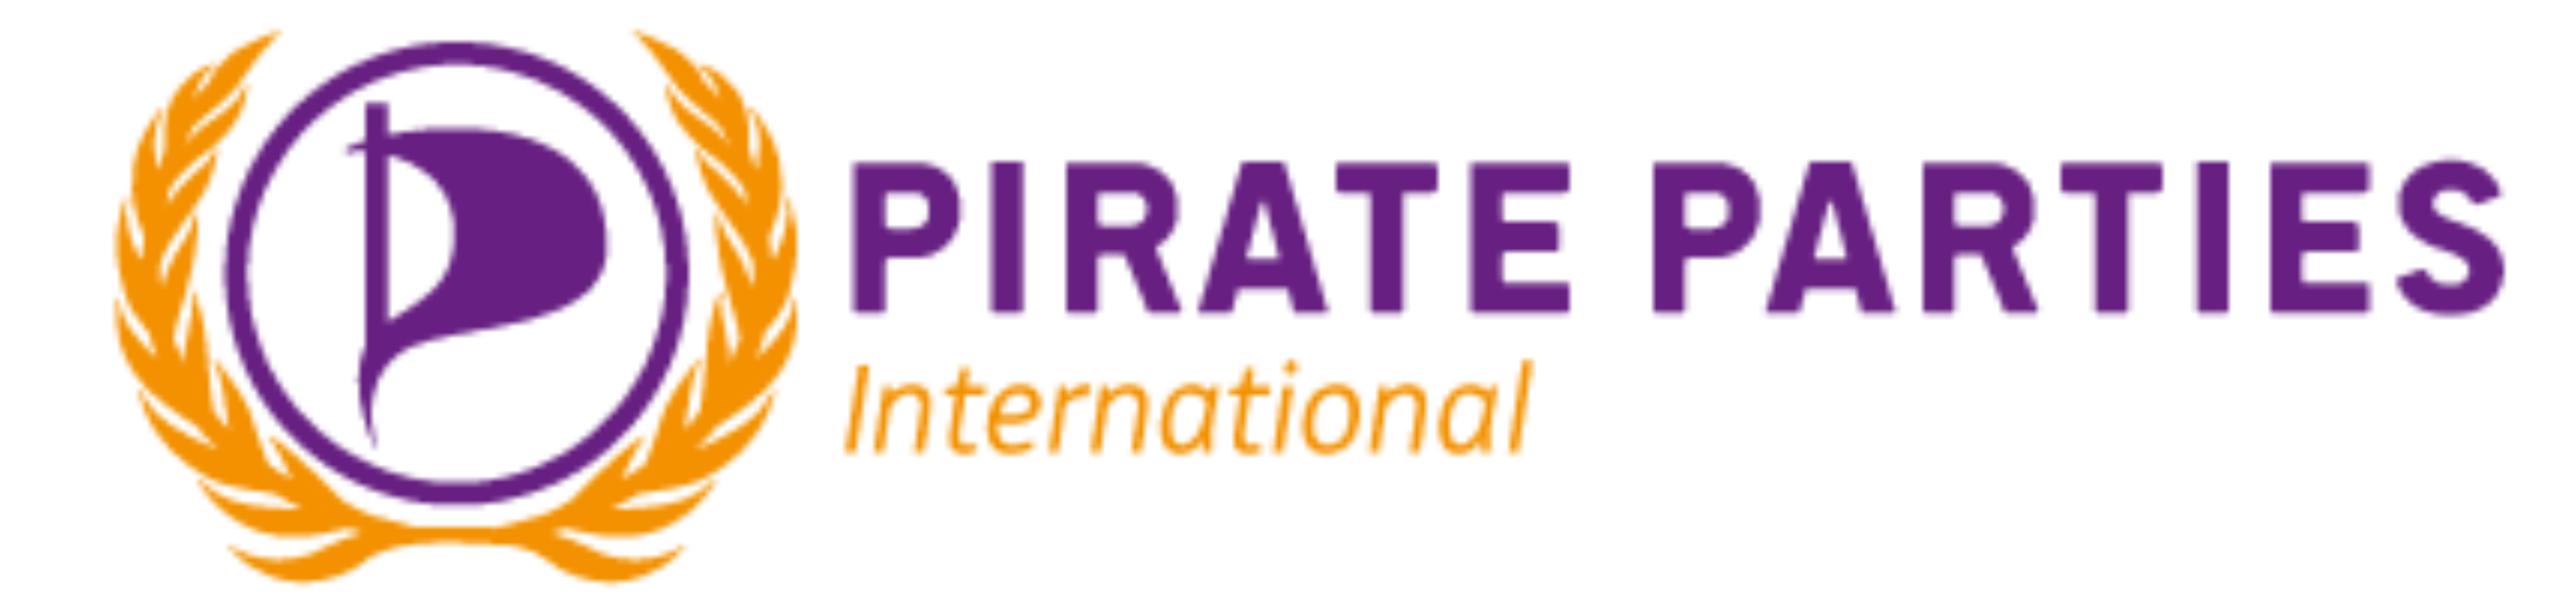 PPI in Support of #PiratesforIceland | Pirate Parties International